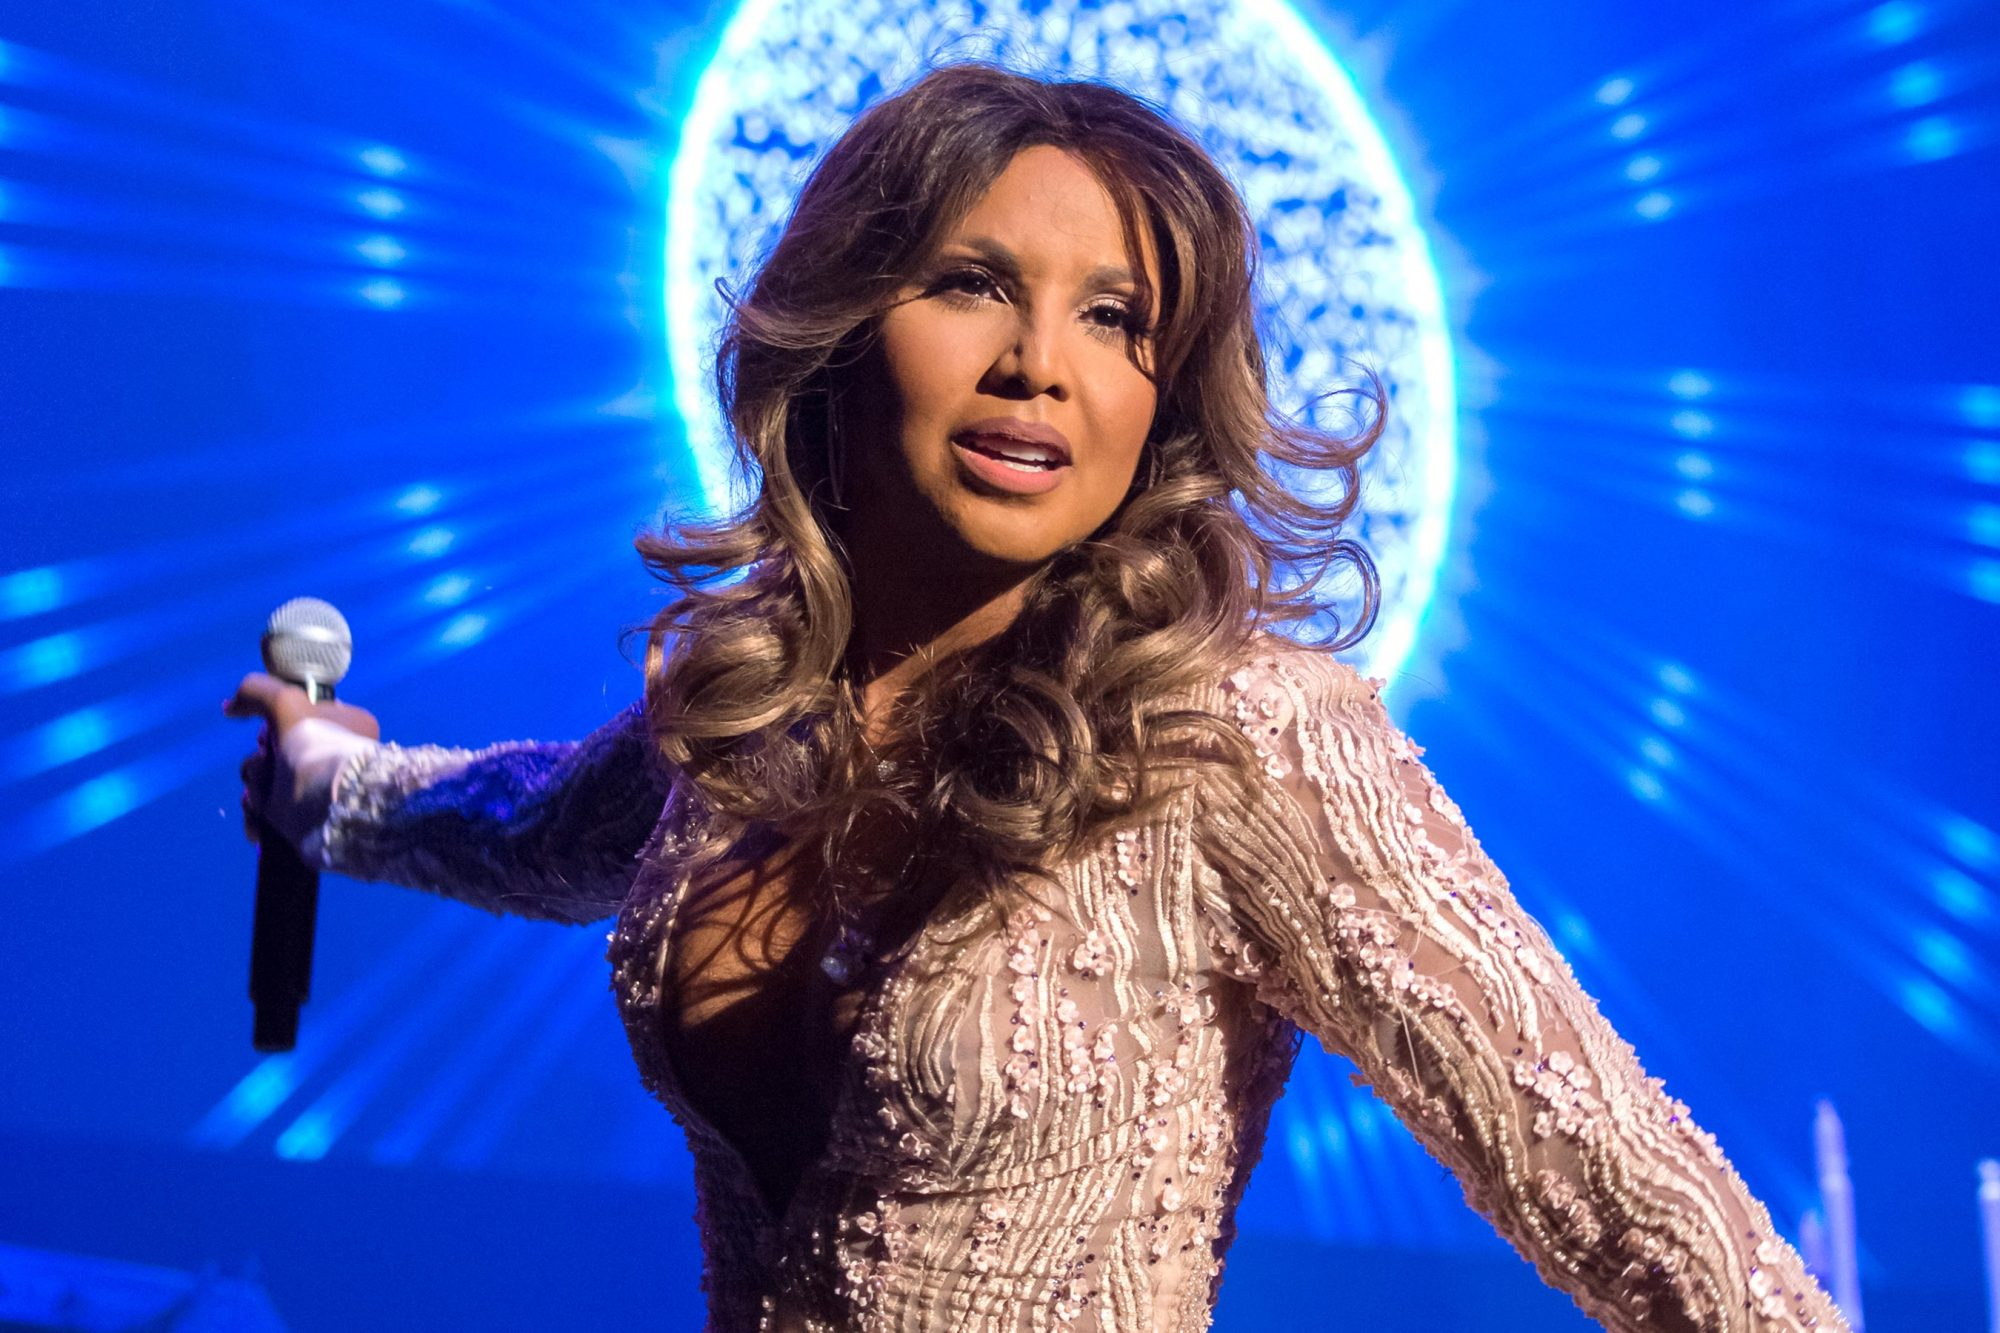 Toni Braxton Finally Drops The Cover Of Harper's Bazaar That She Graces – See Her Photo Here